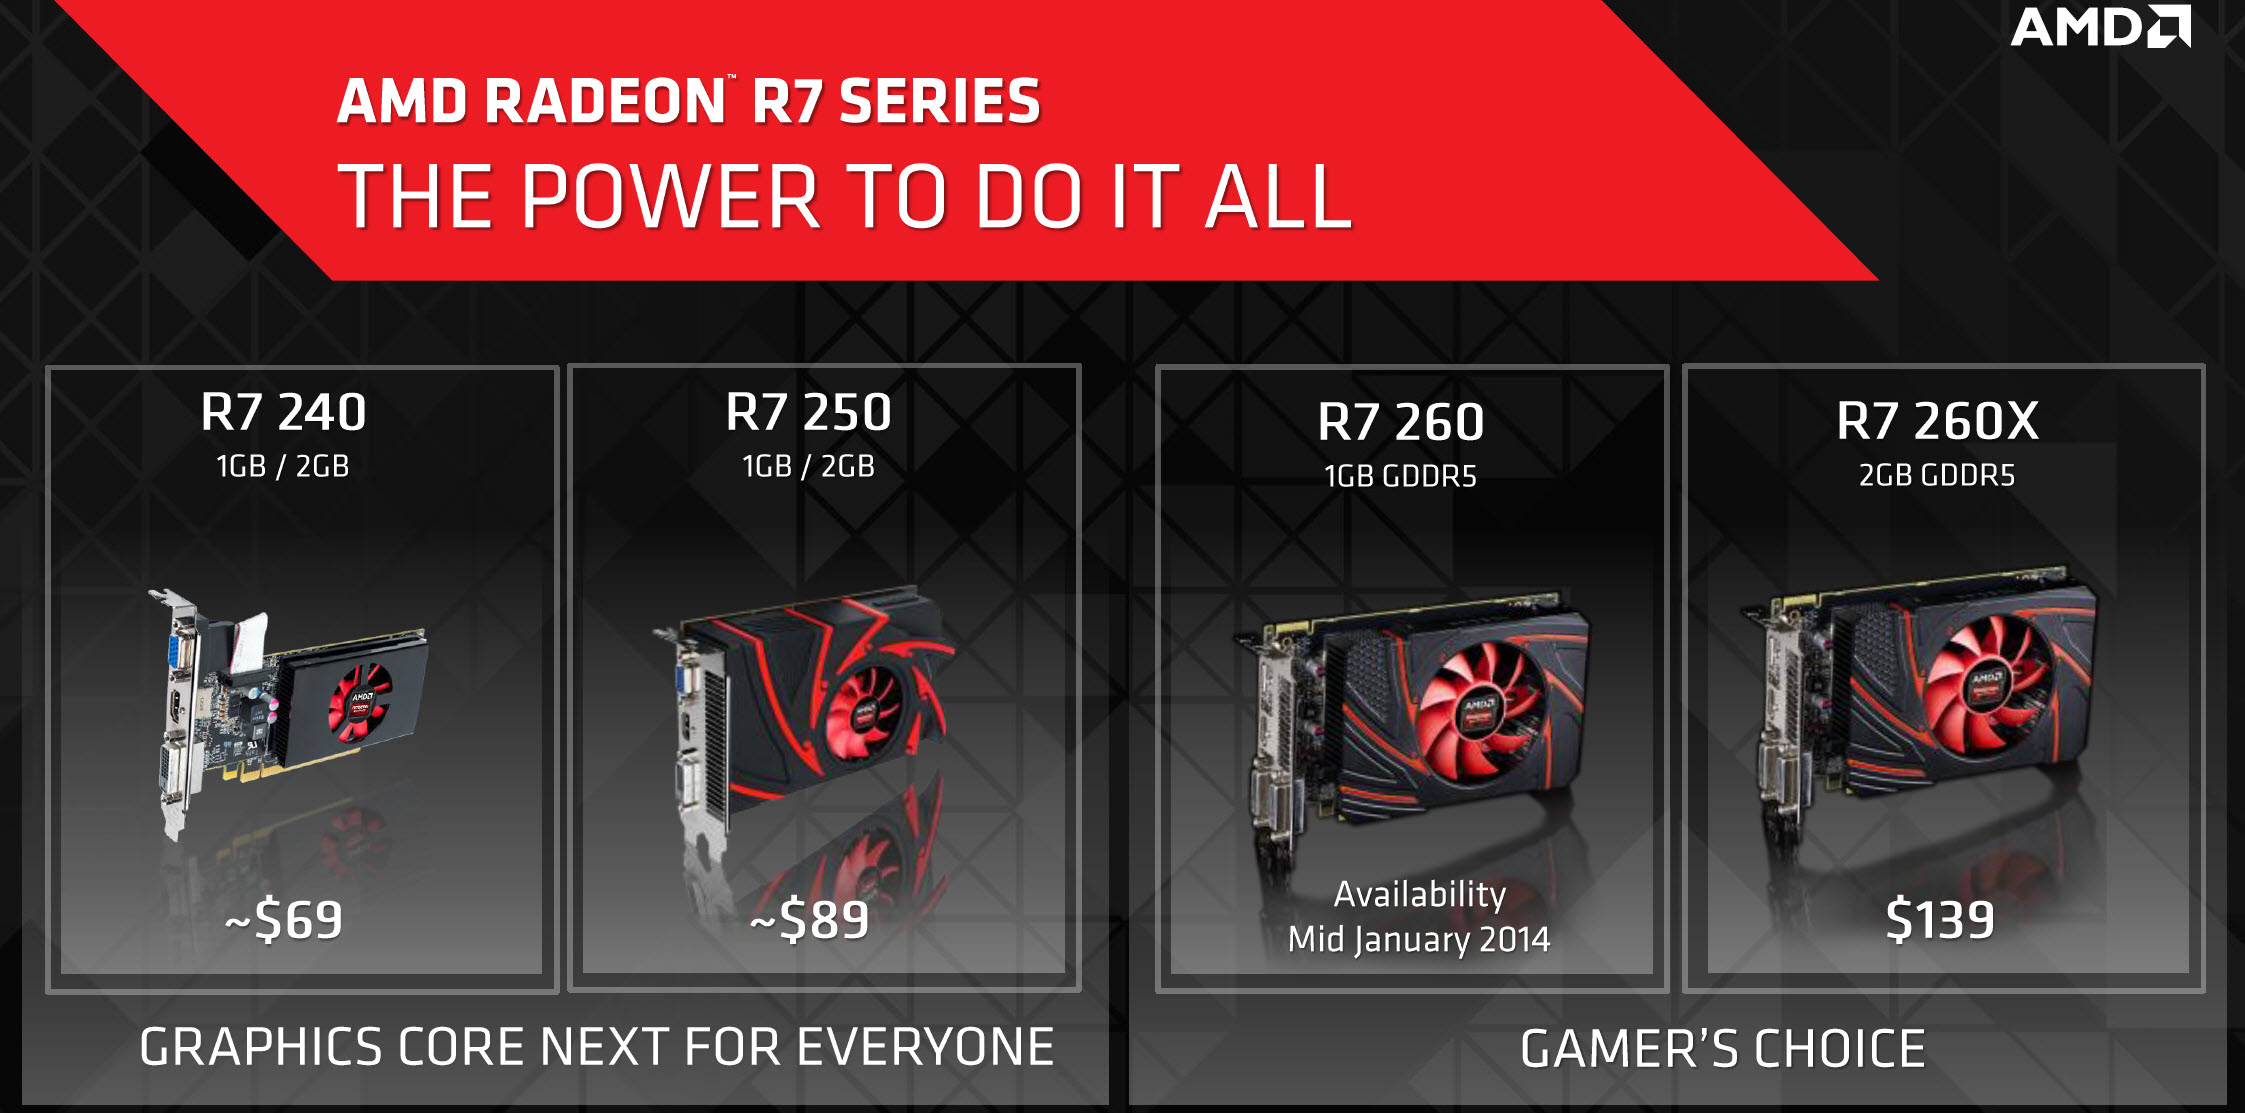 Graphics card power rankings